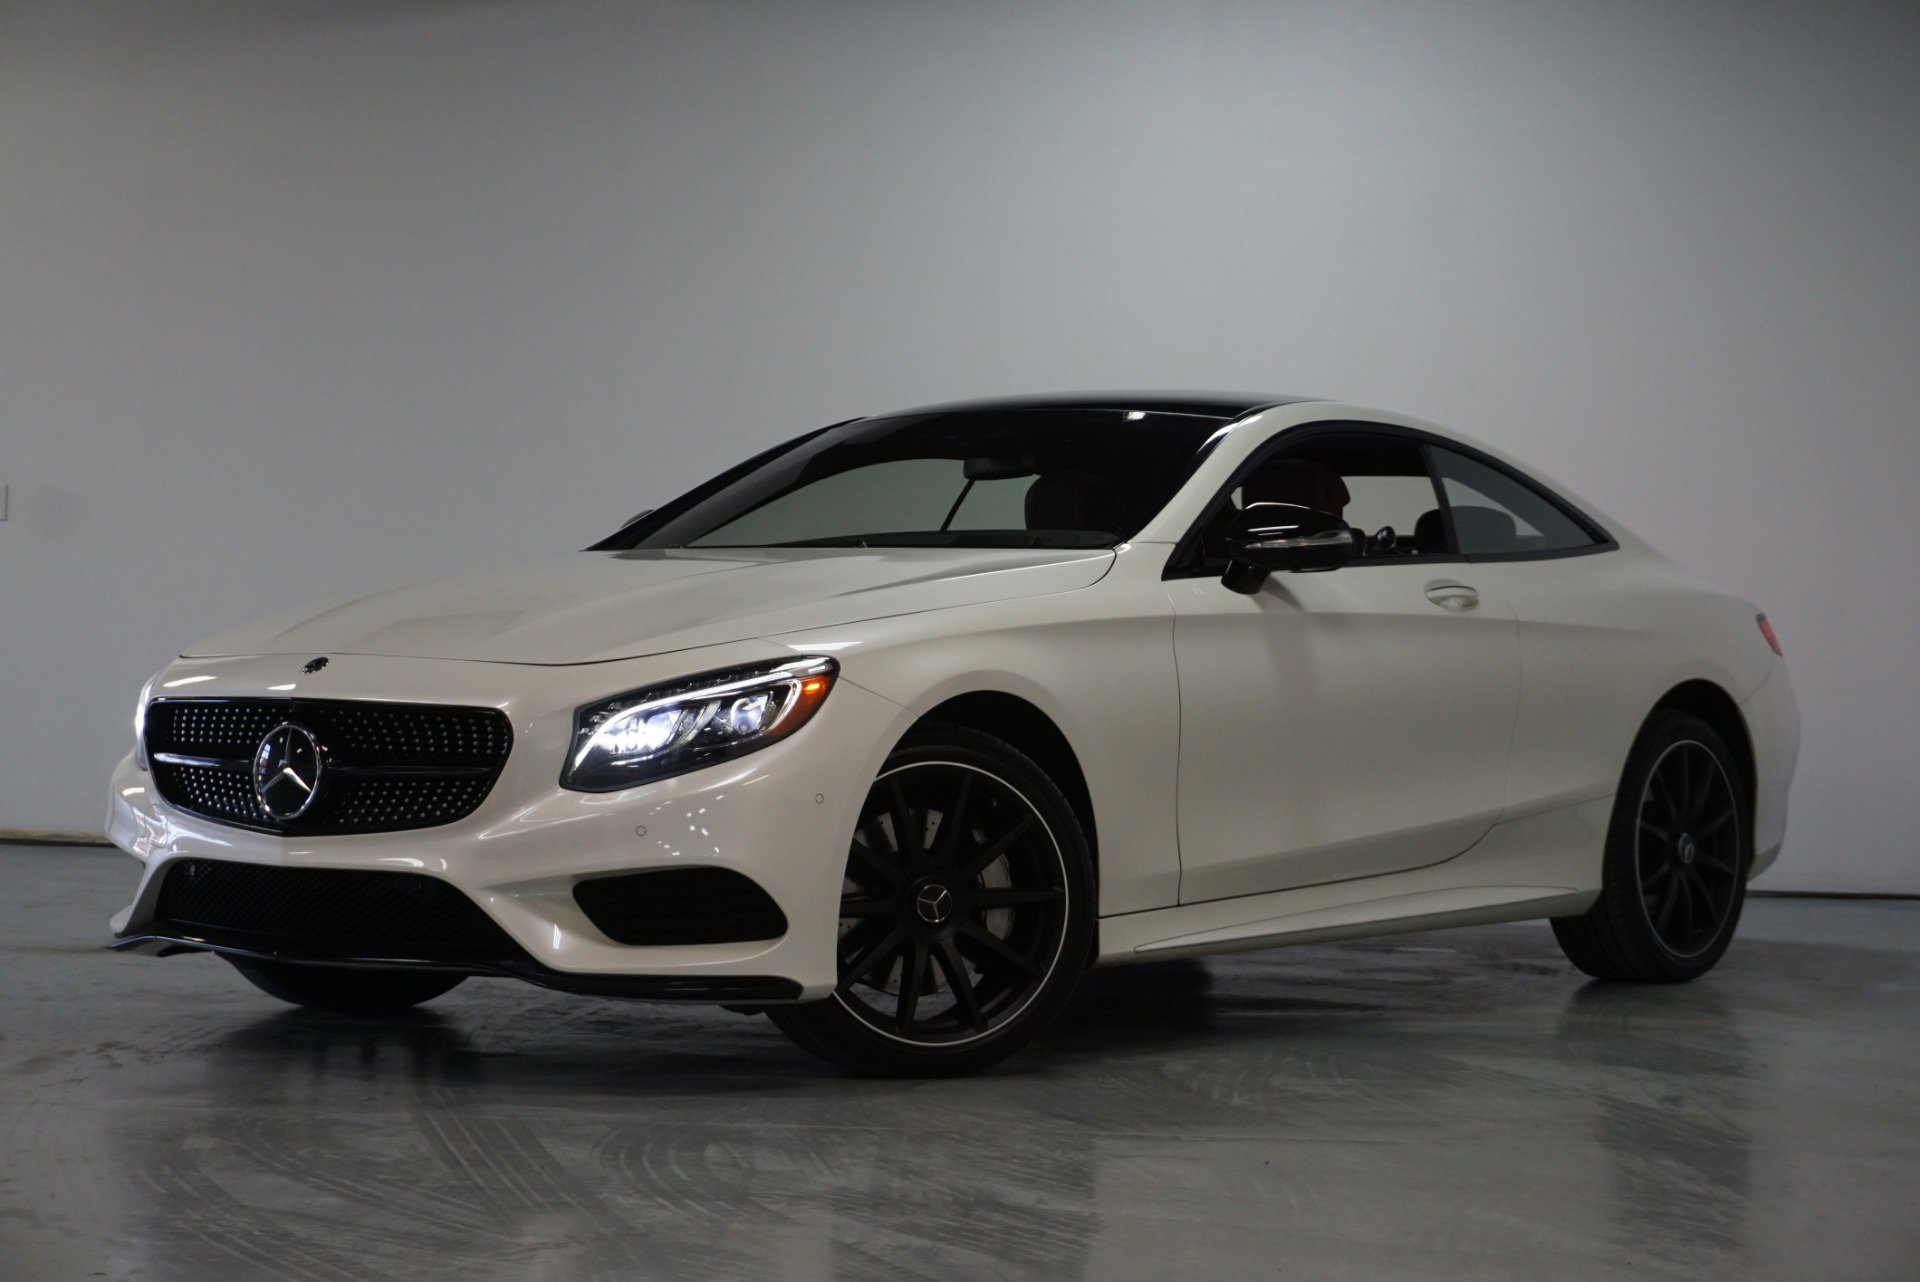 2016 Mercedes-Benz S 550 4MATIC Coupe image